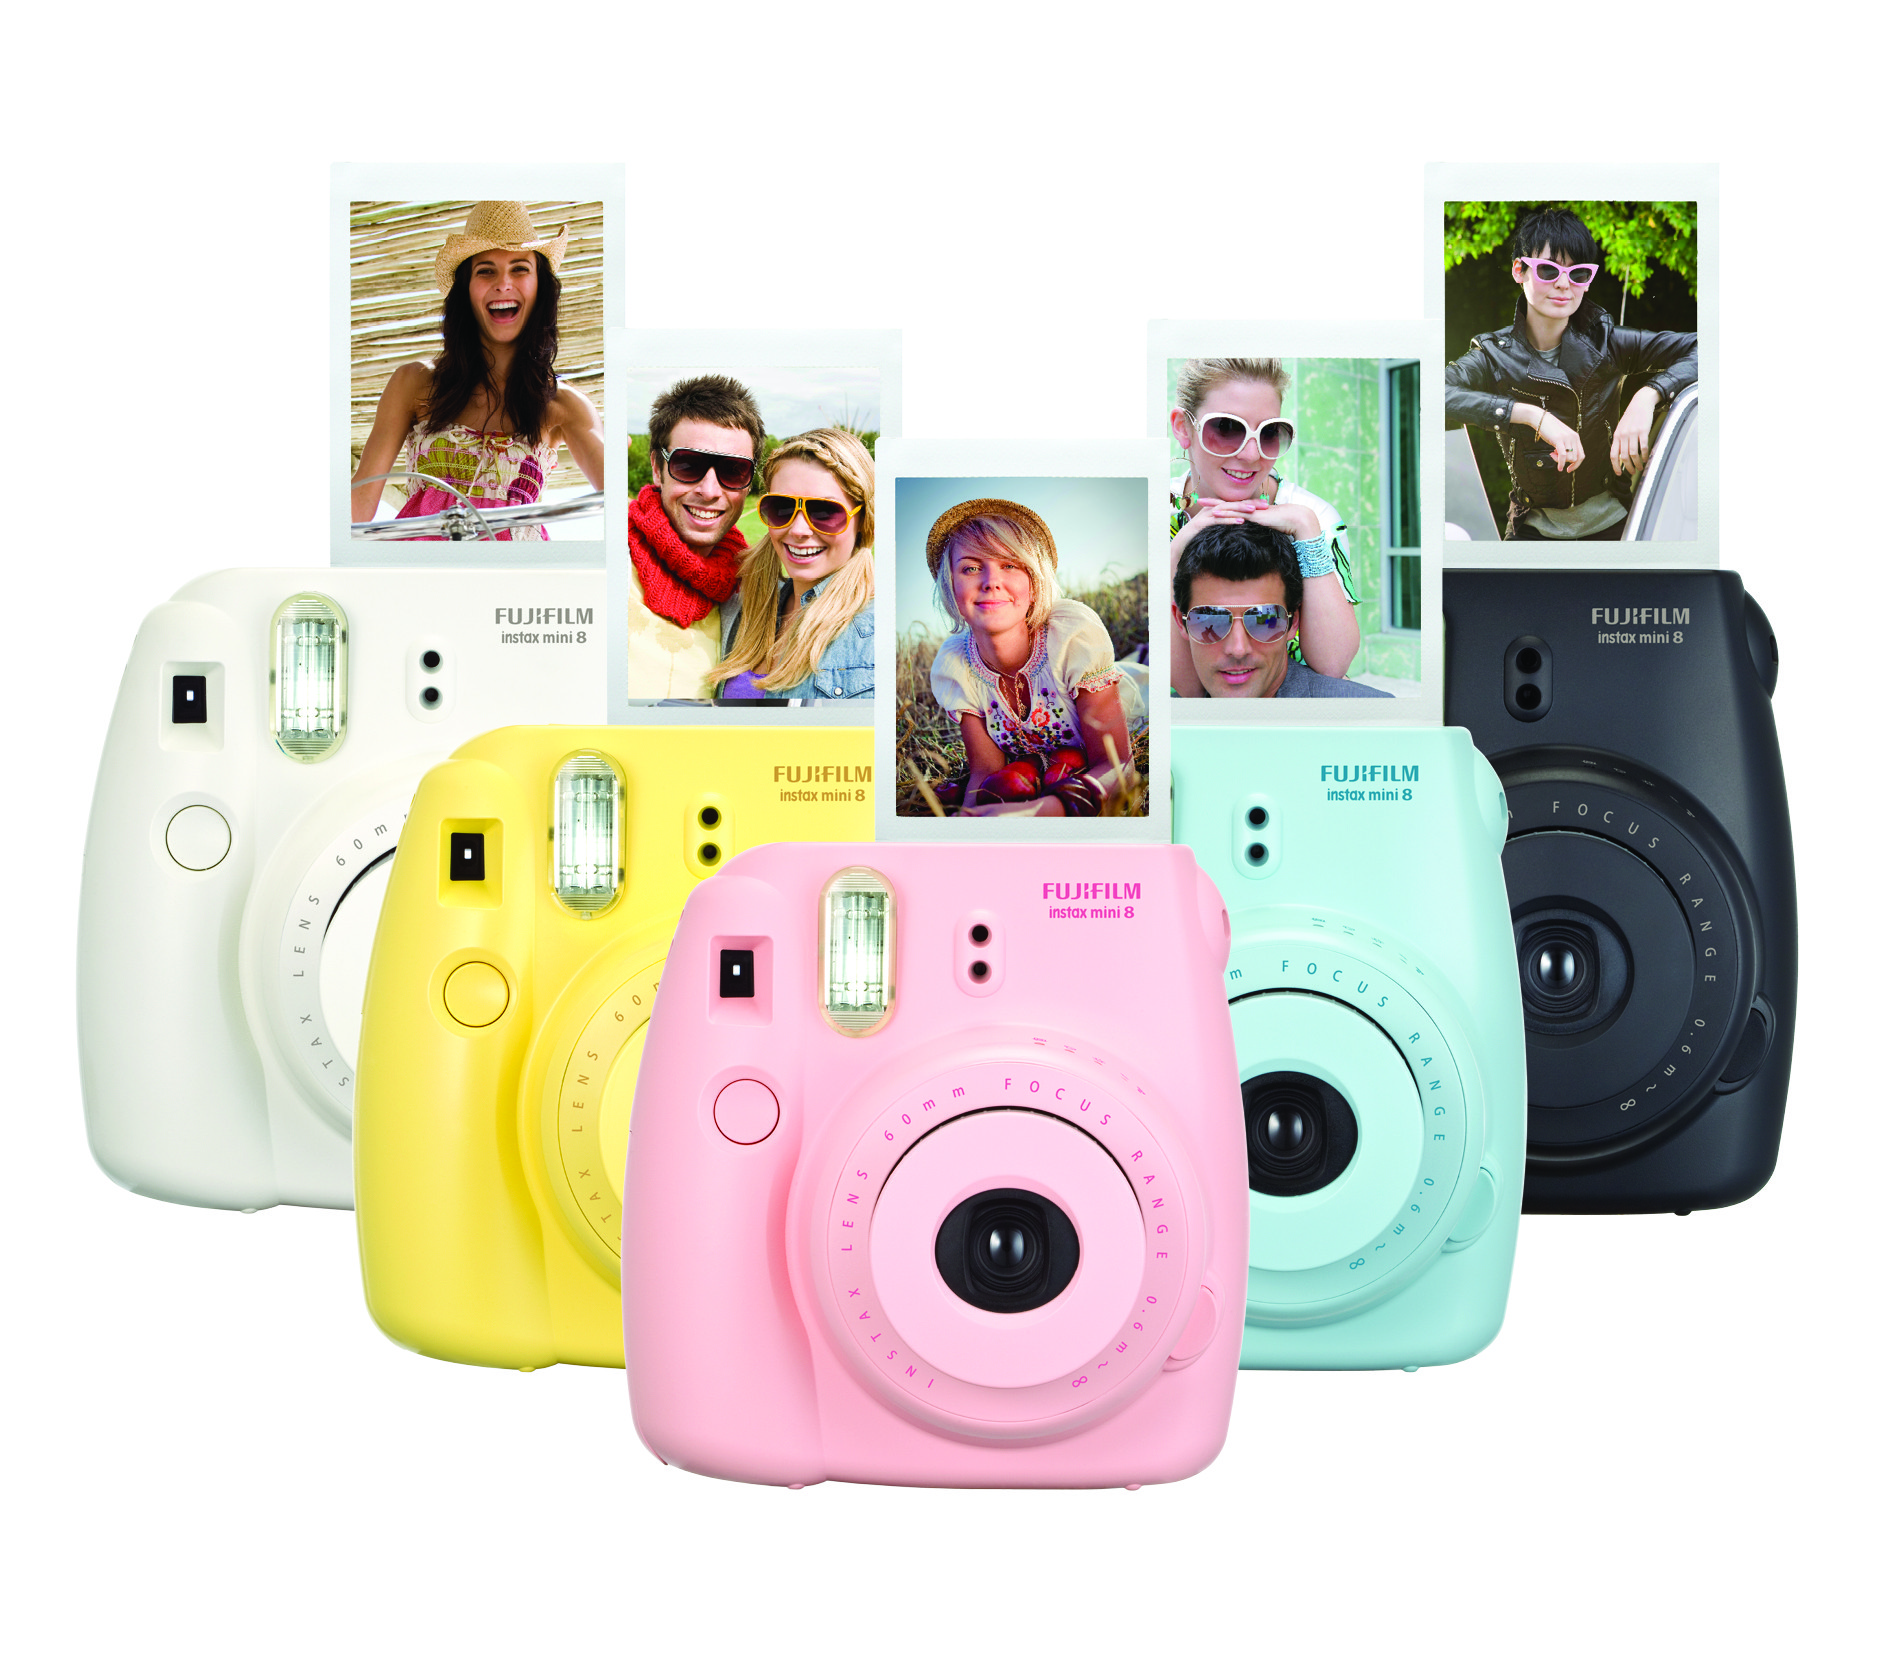 fujifilm instax mini 8 poznan wroclaw digital24 4725860212 oficjalne archiwum allegro. Black Bedroom Furniture Sets. Home Design Ideas